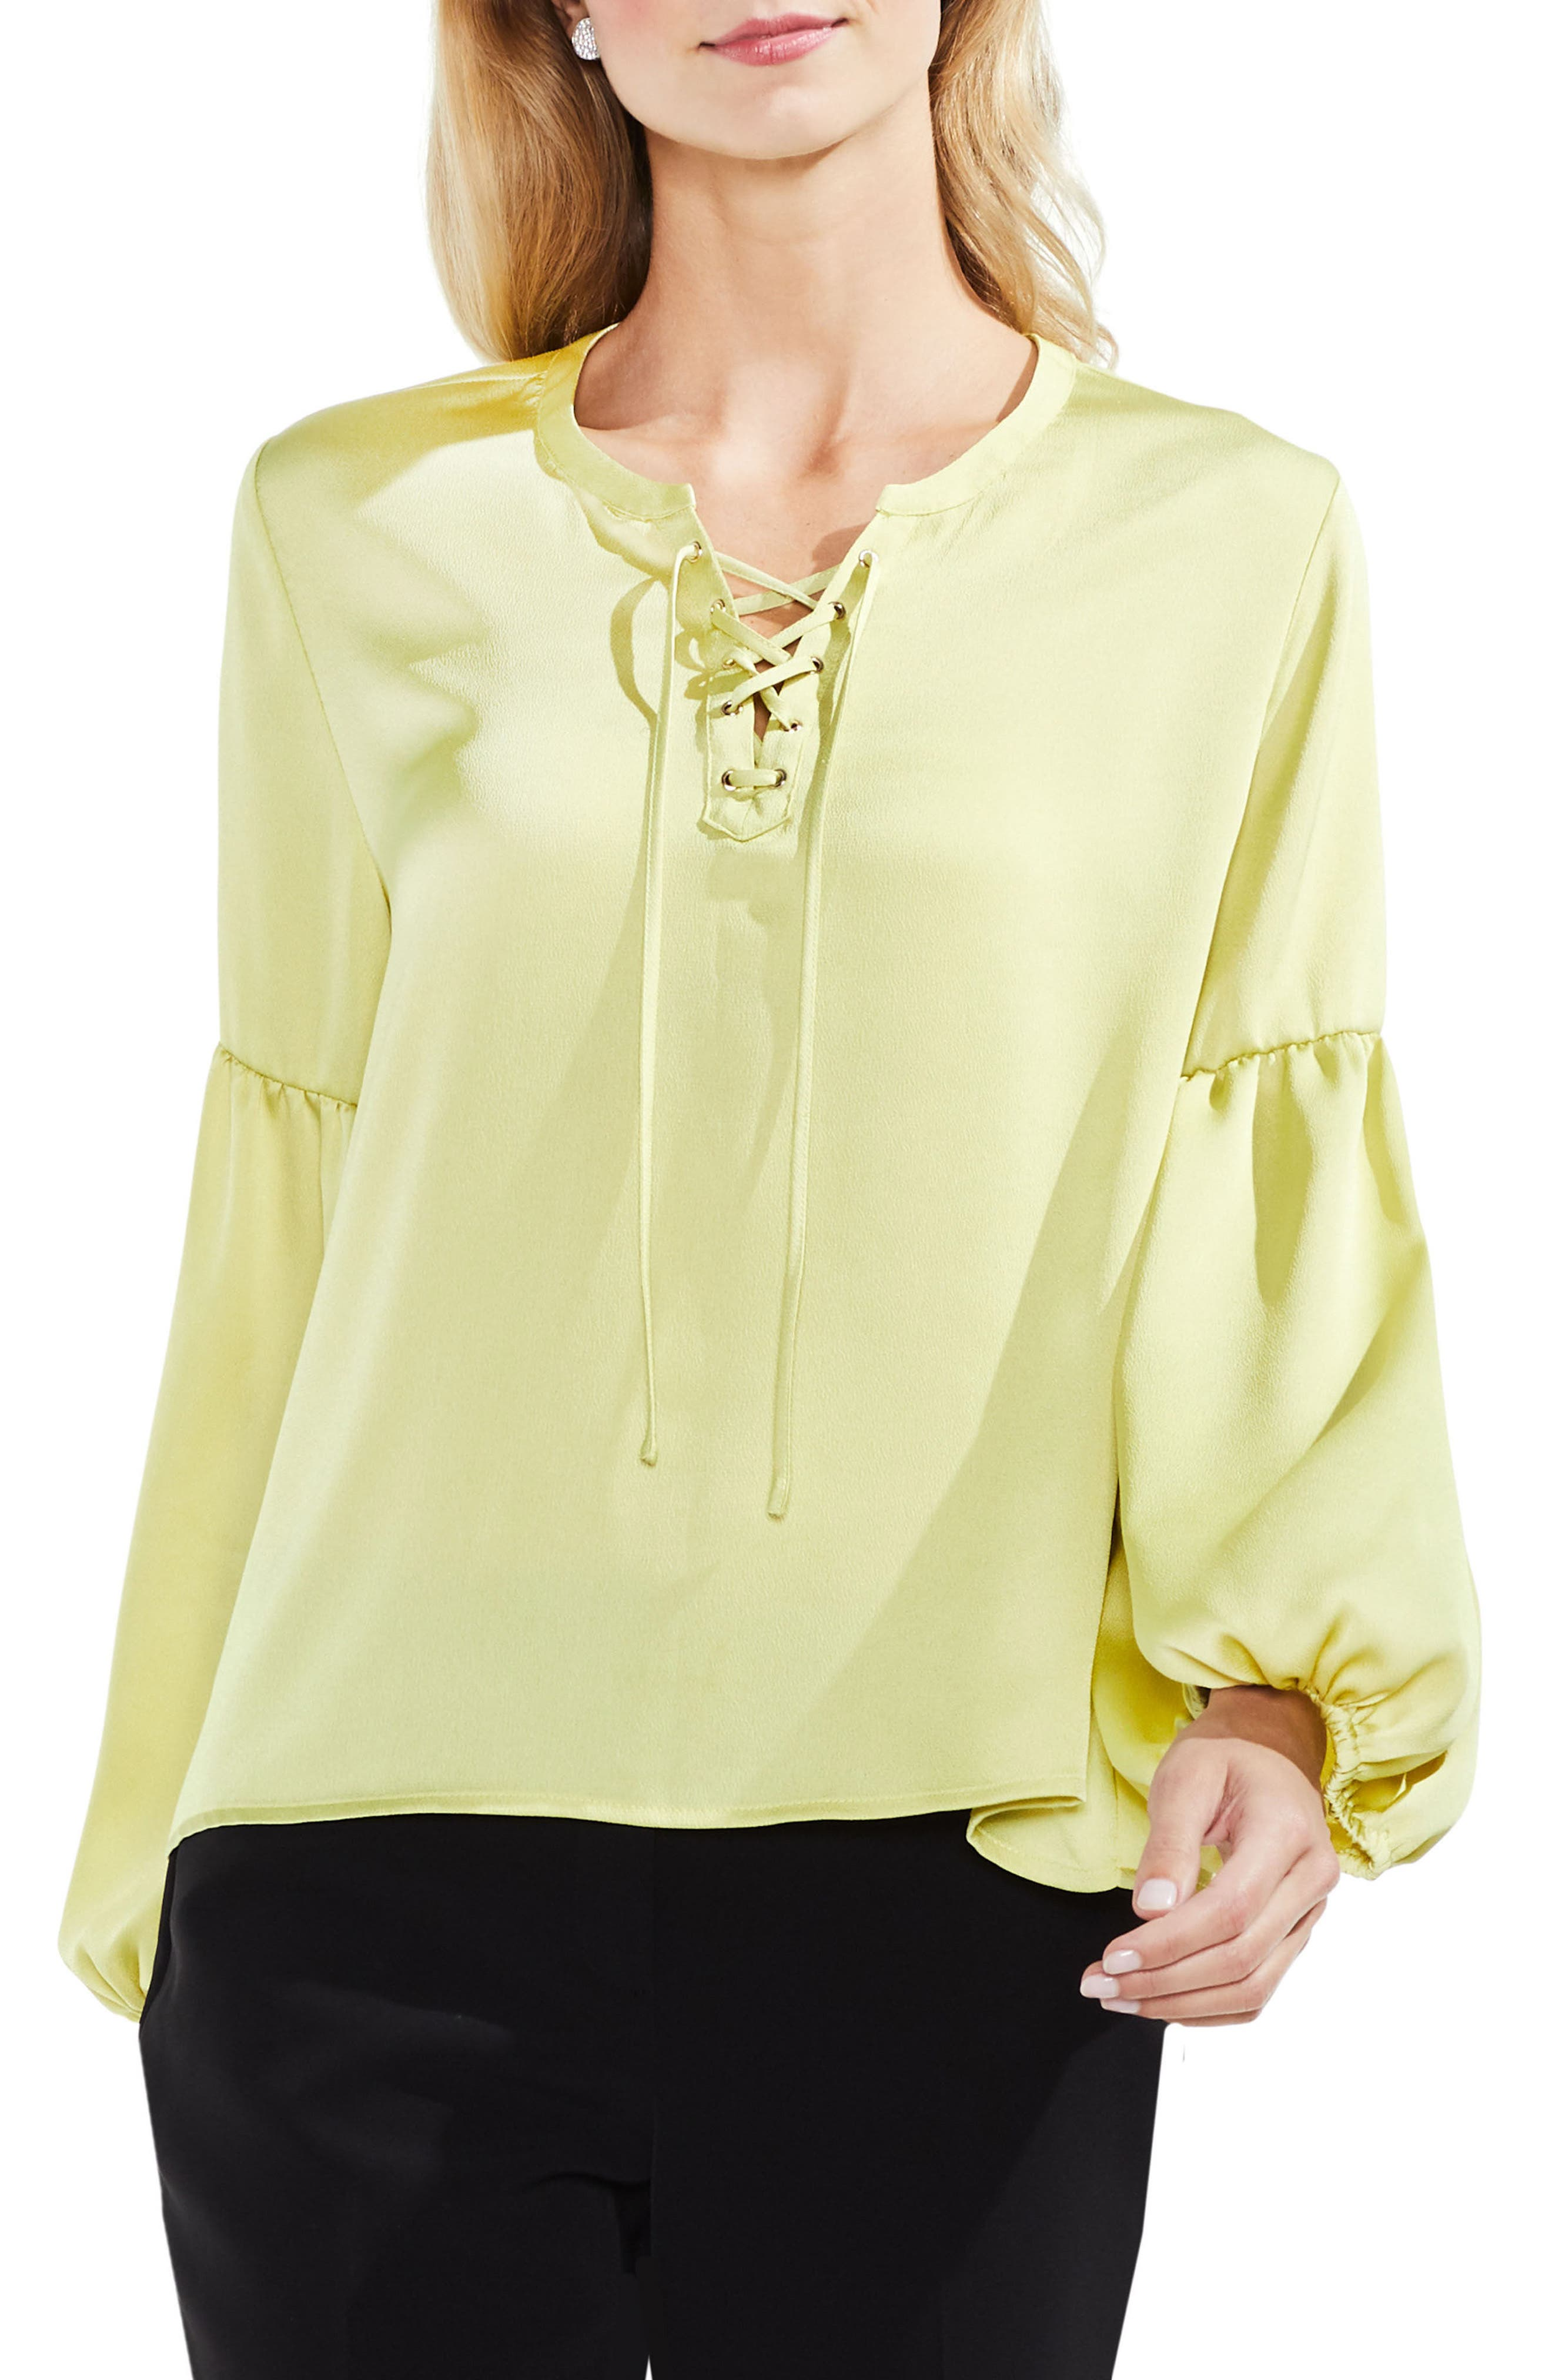 Main Image - Vince Camuto Lace-Up Hammered Satin Blouse